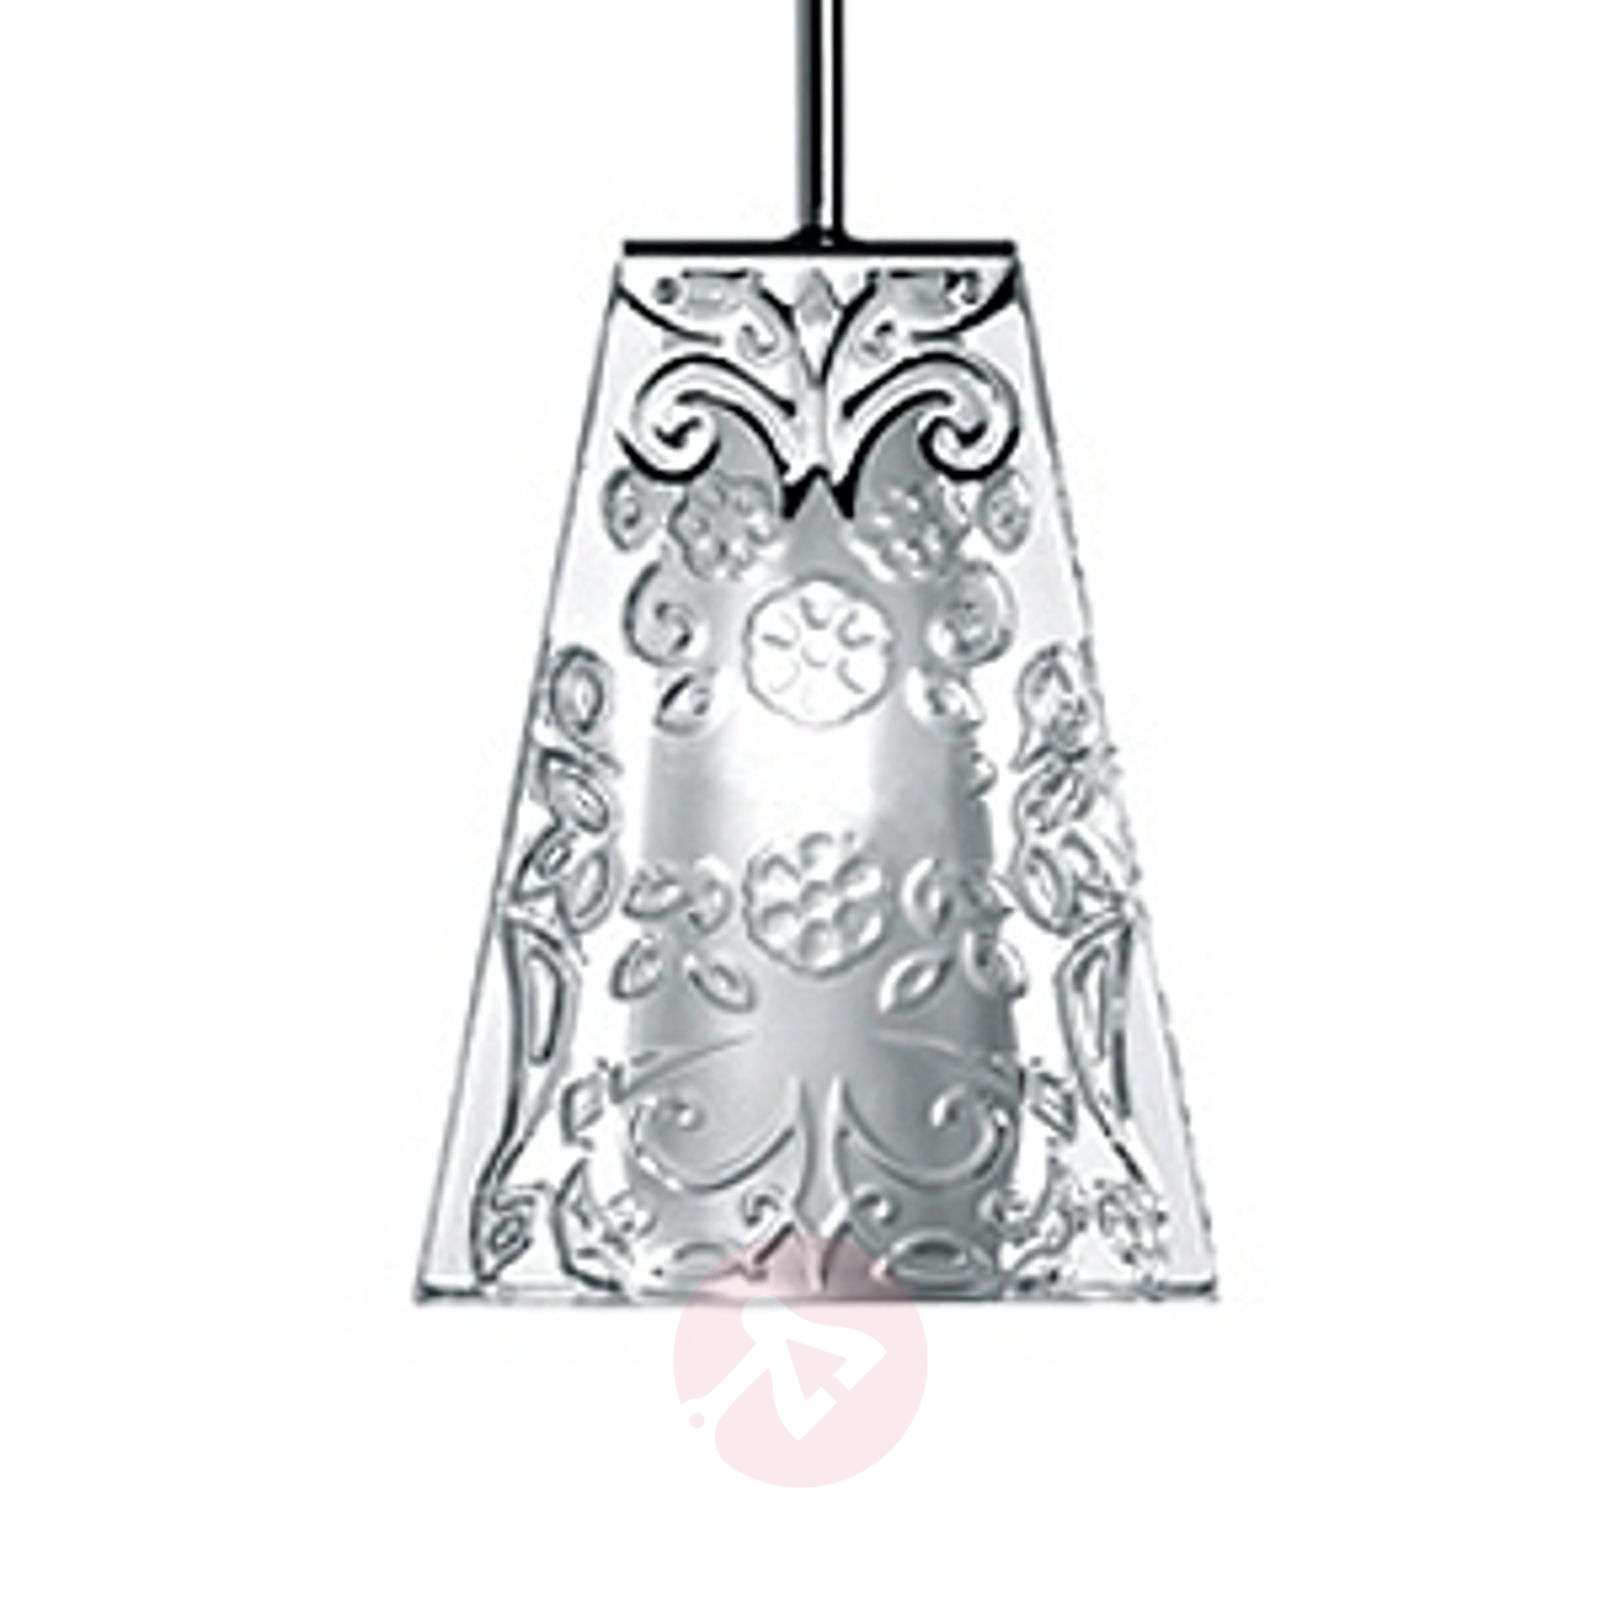 Betoverende hanglamp VICKY 1-lichts-3503124-01